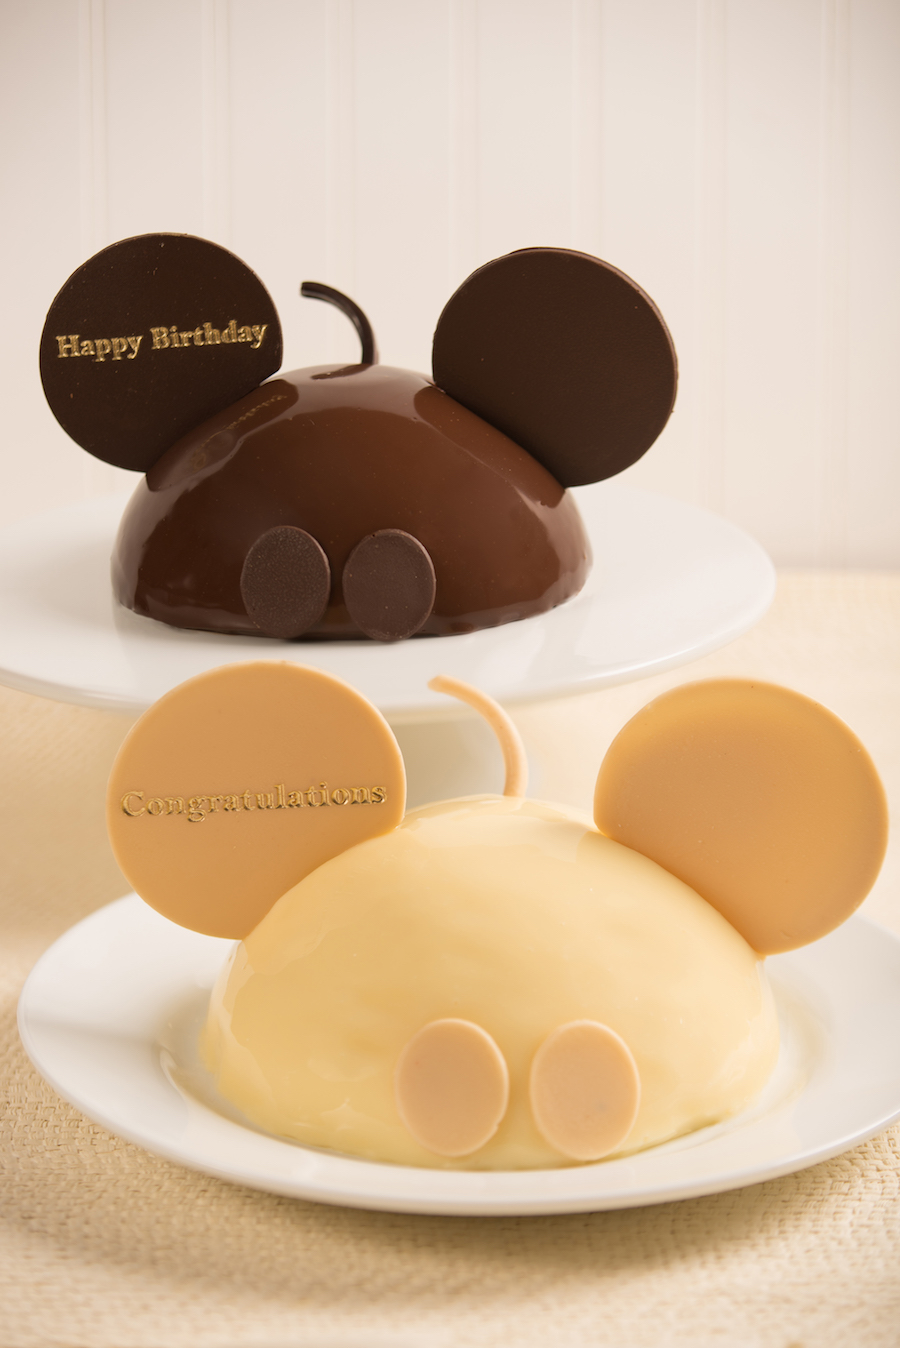 New Mickey Mouse celebration cakes coming to Disney World